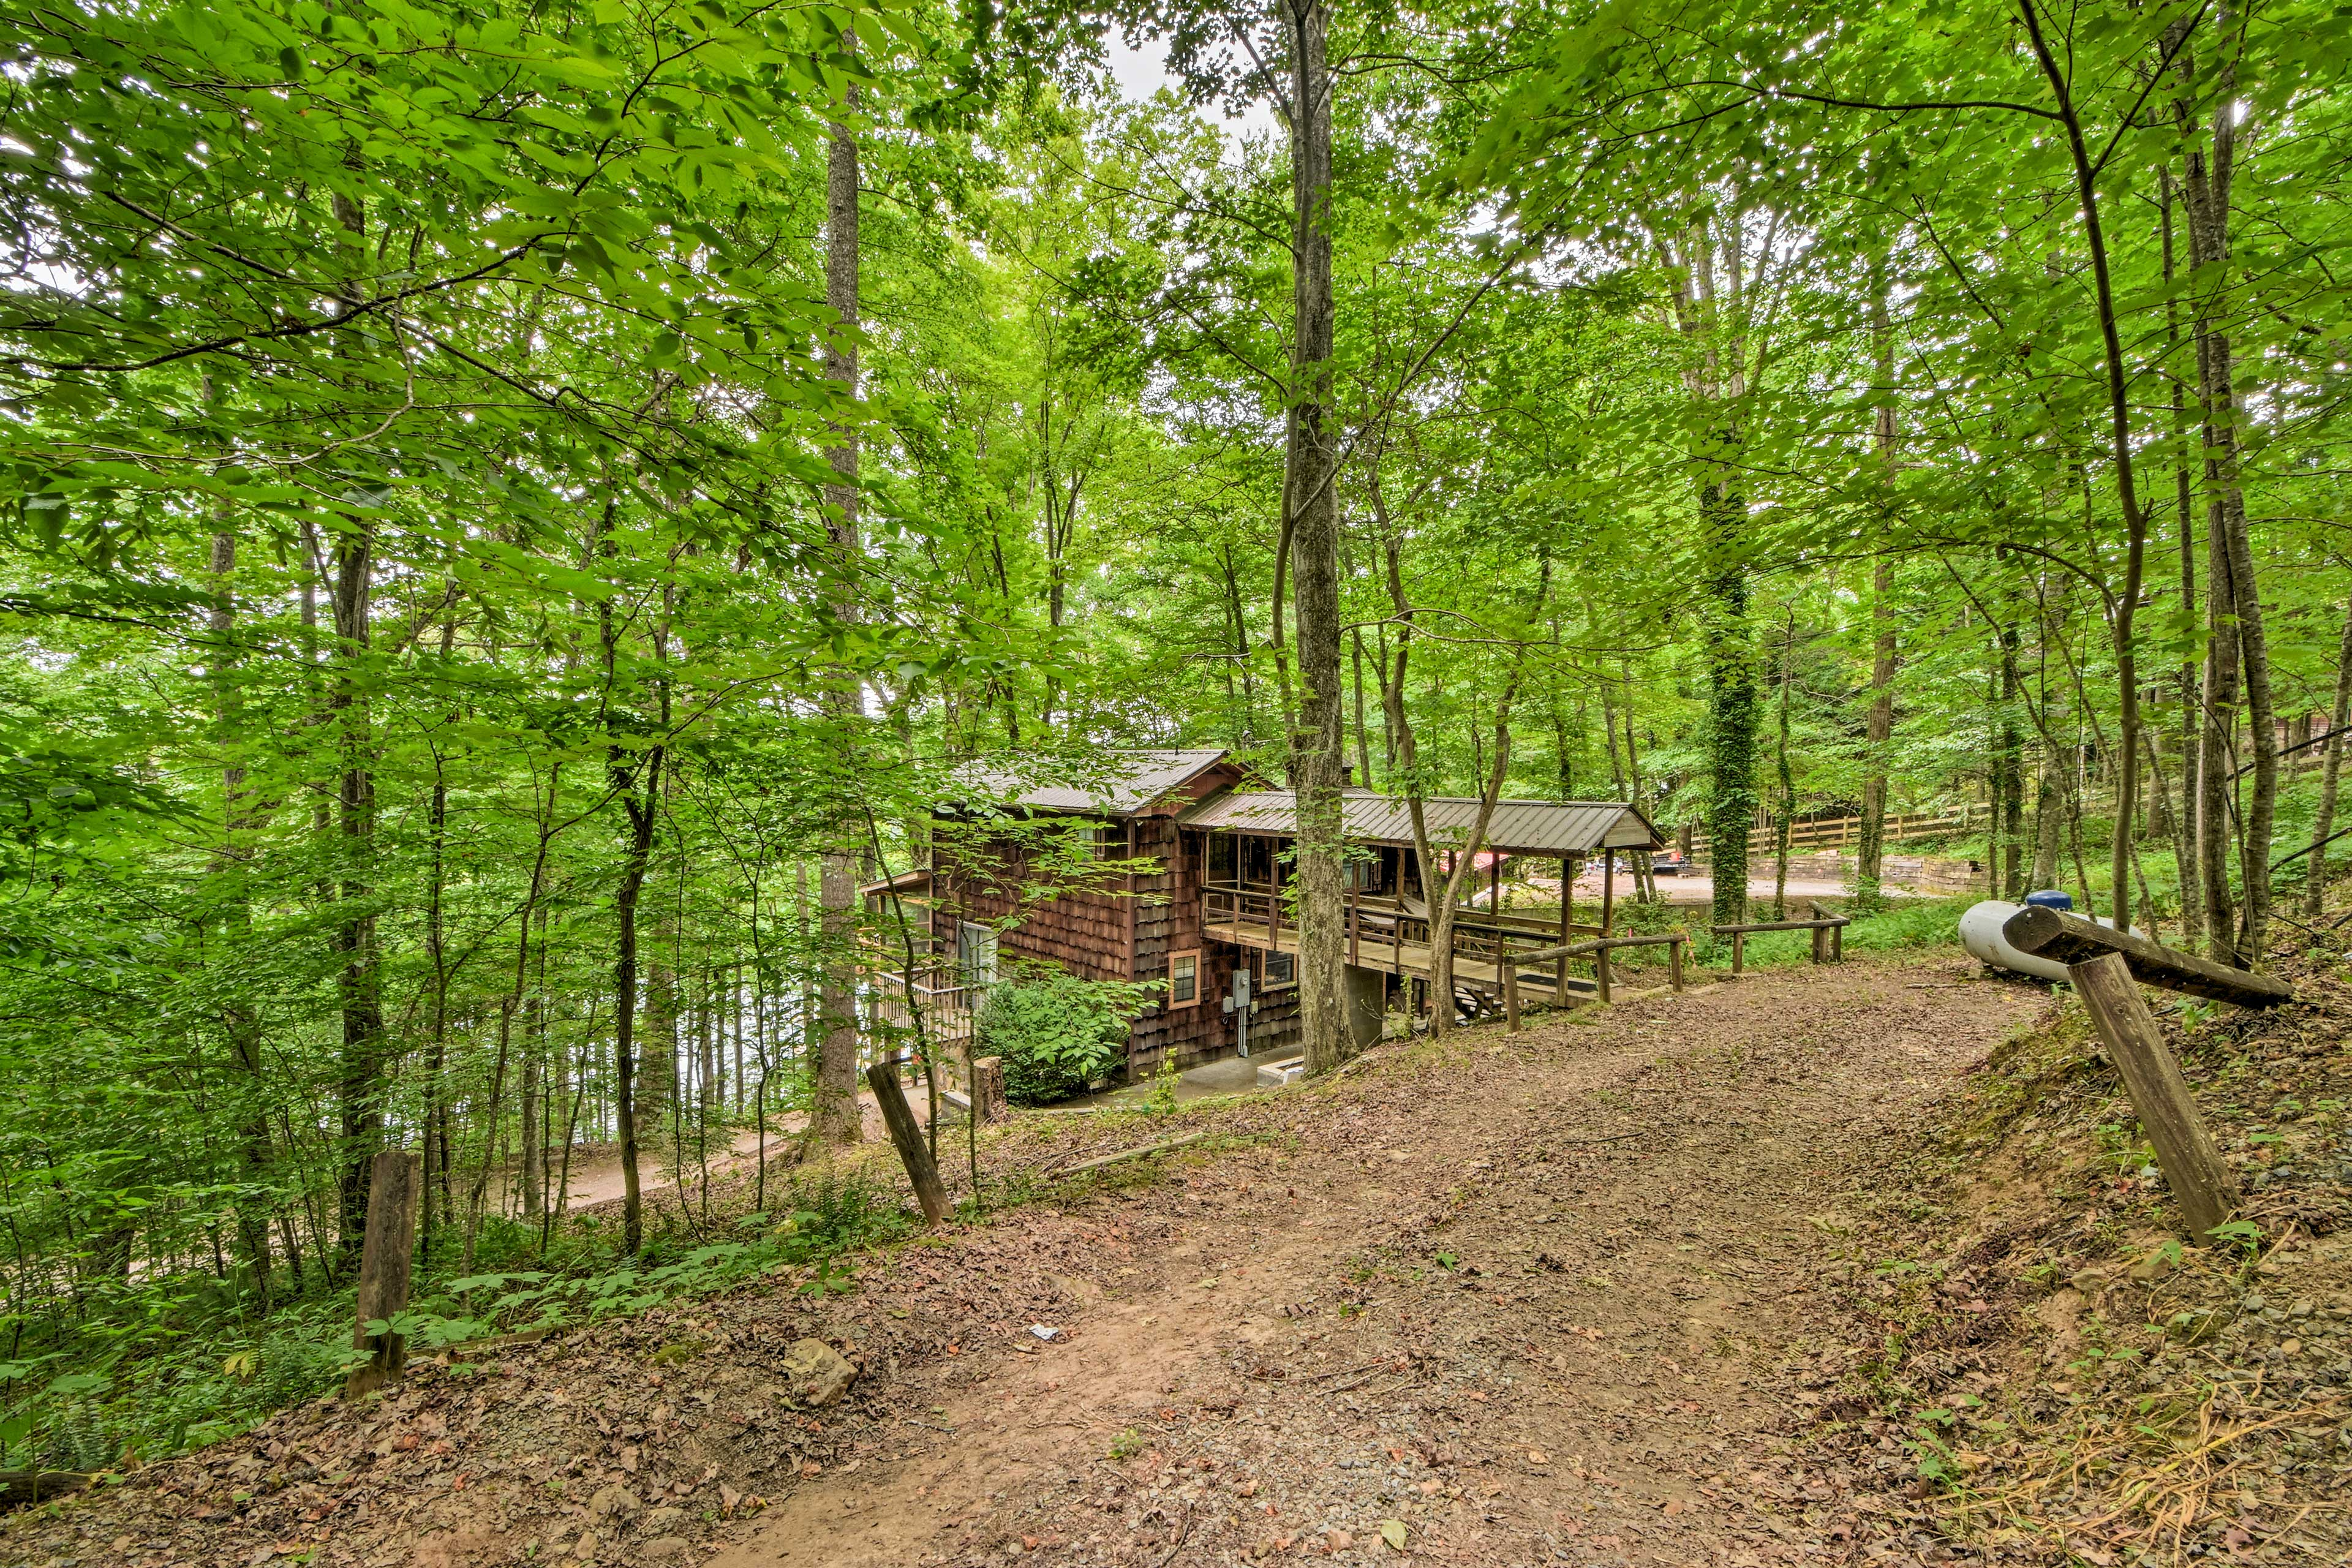 You'll find this slice of paradise nestled in the woods.